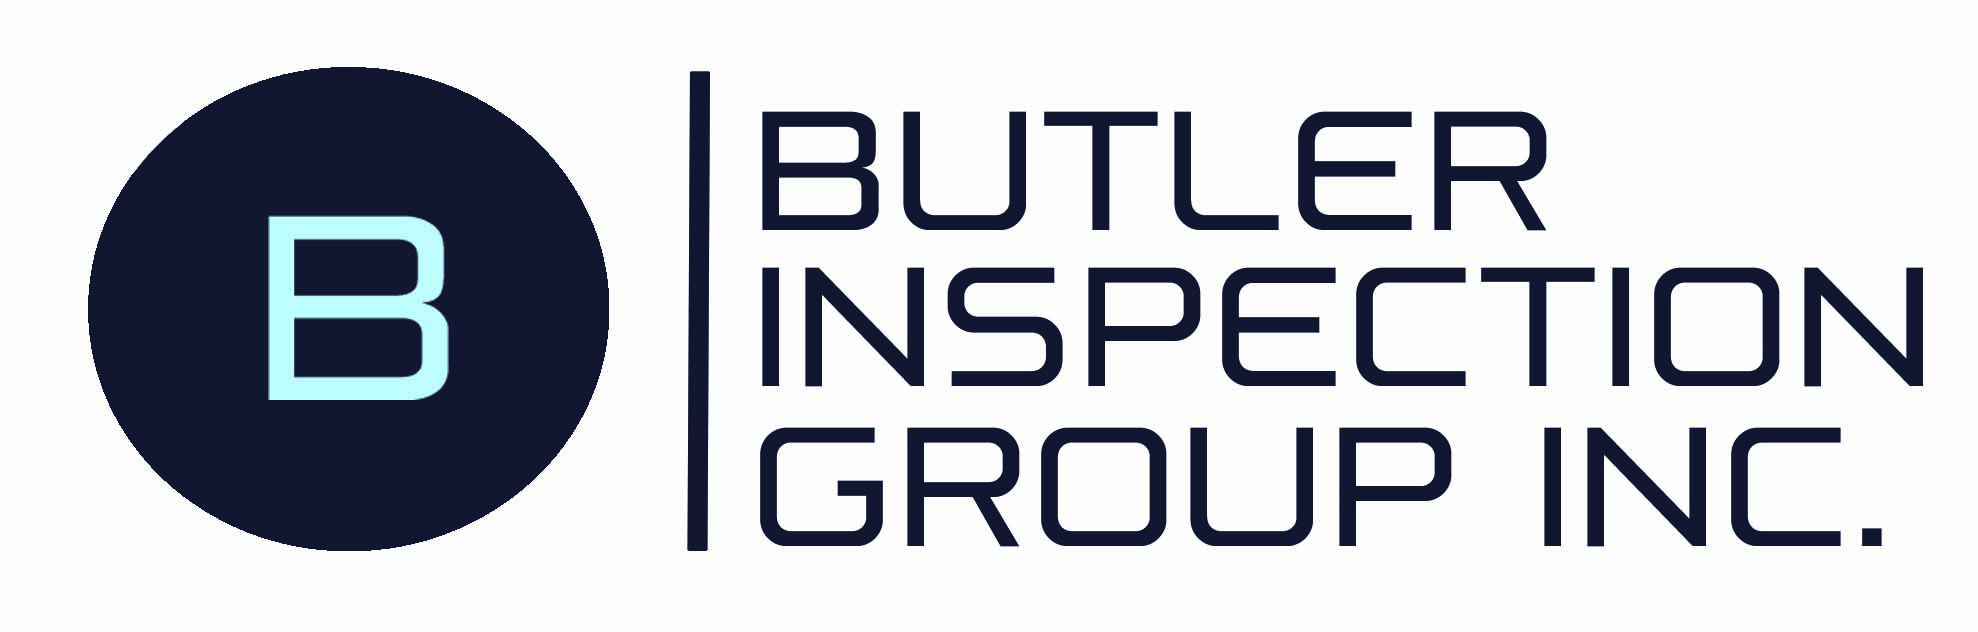 Butler Inspection Group Inc.